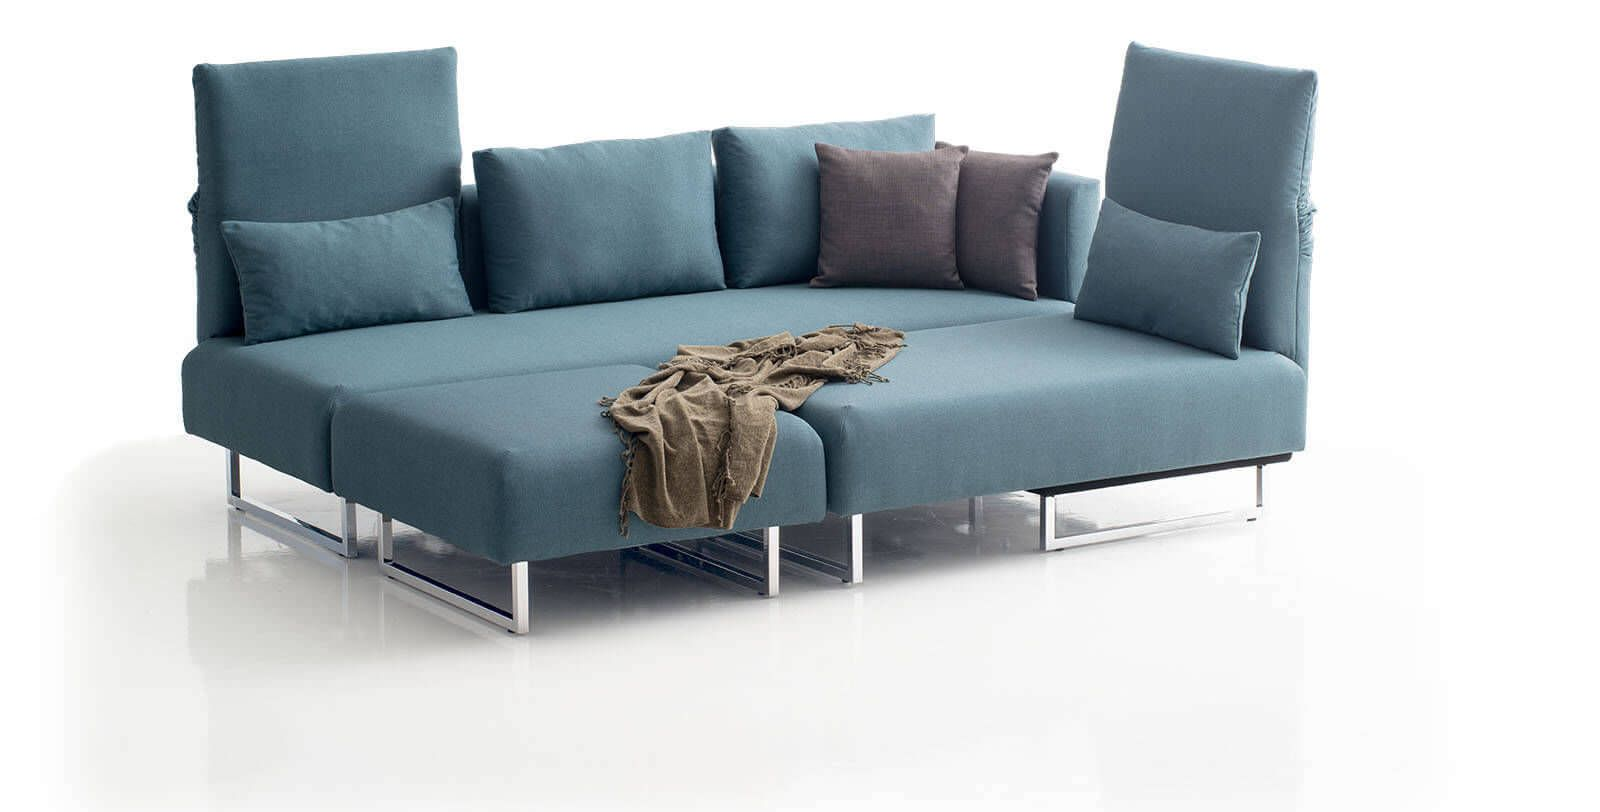 Franz Fertig Cocco Corner Sofa Bed Contemporary Textile Confetto By Franz